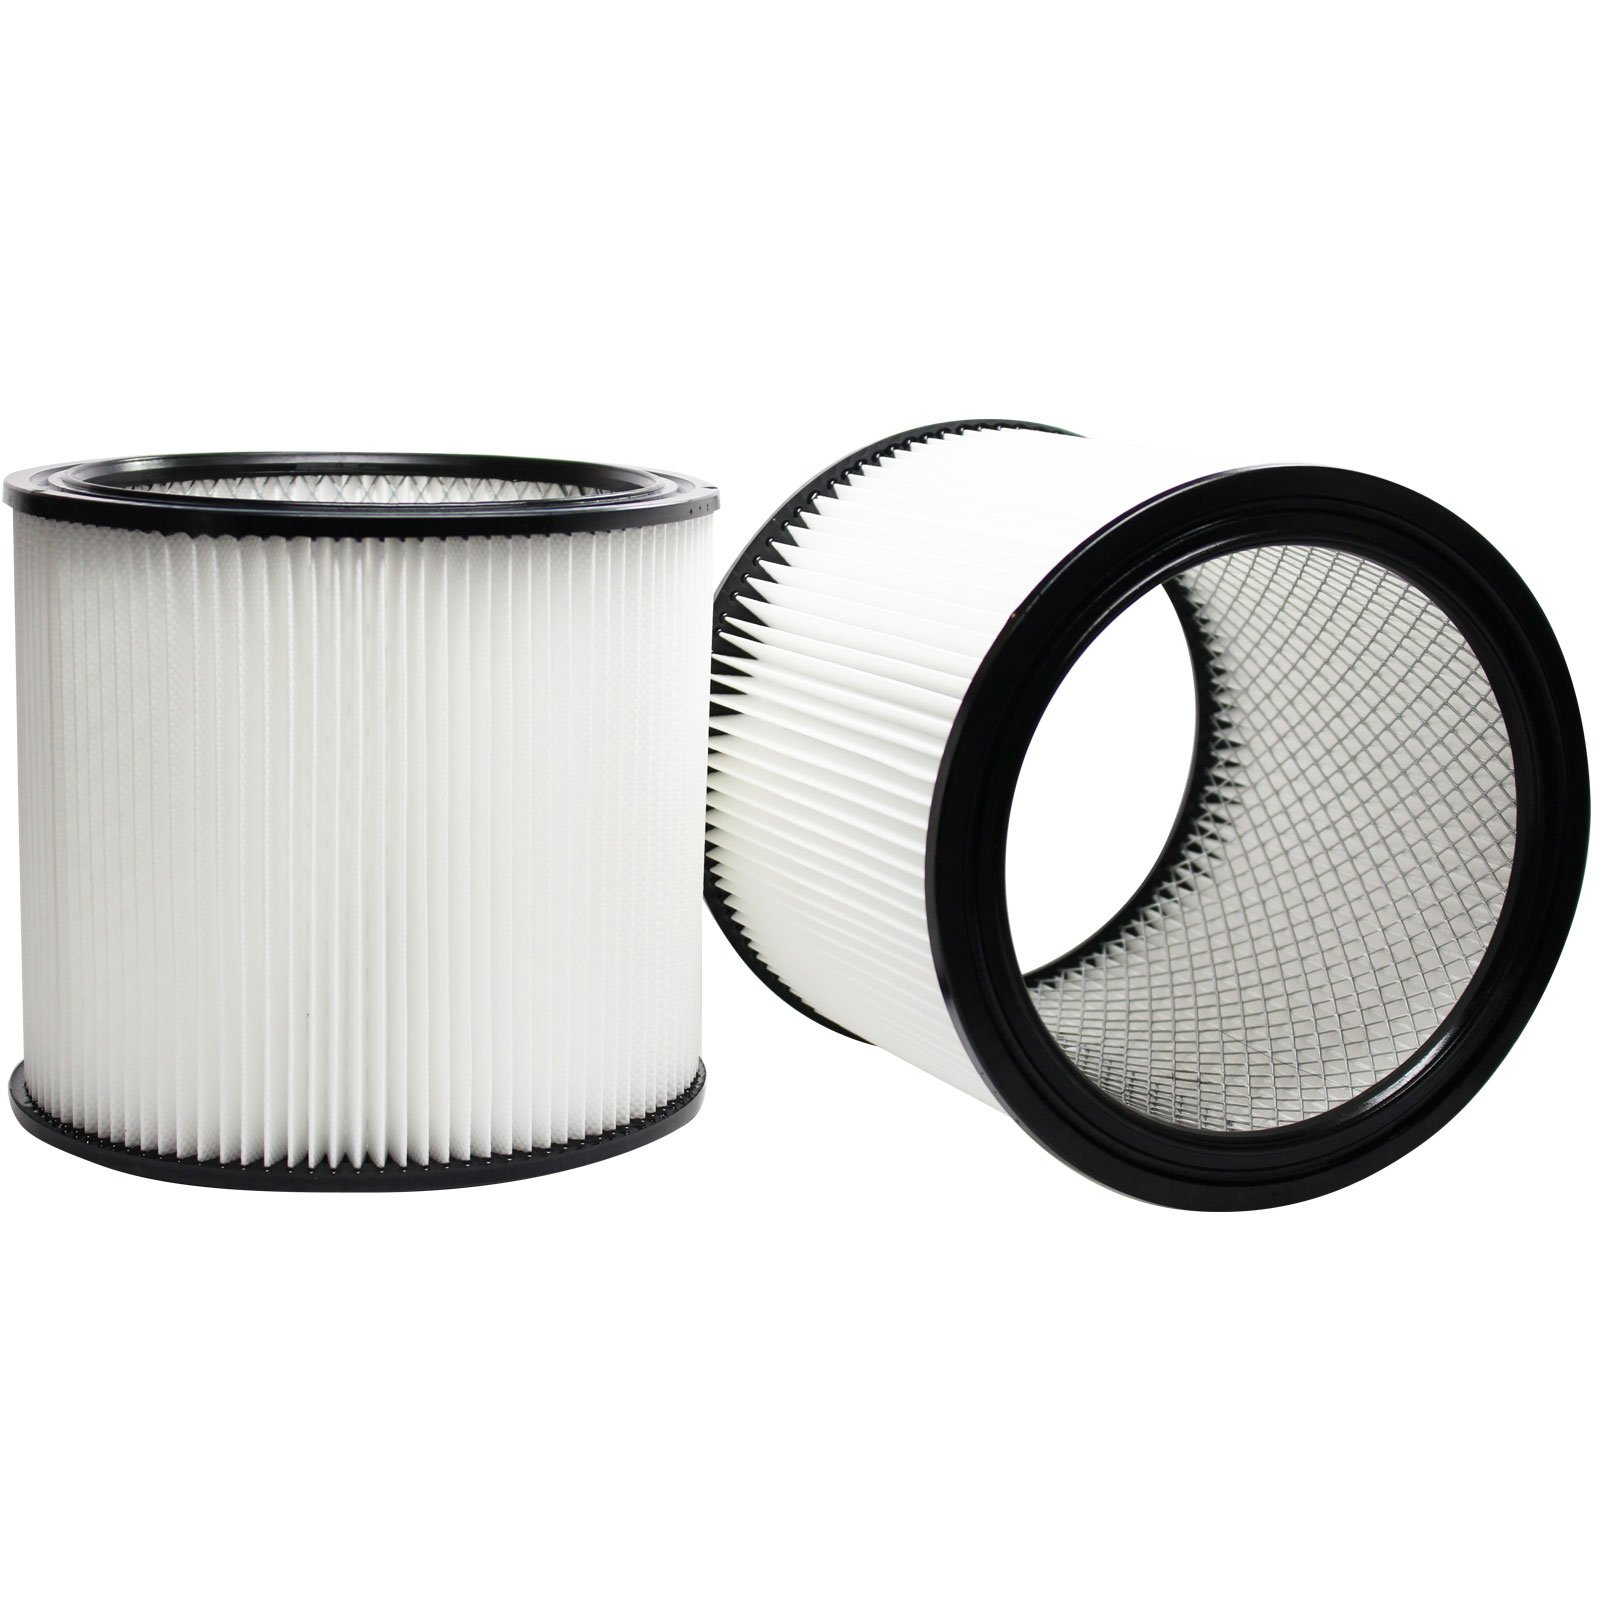 2-Pack Replacement 90304 Filter for Shop-Vac - Compatible with Shop-Vac 90304, Shop-Vac LB650C, Shop-Vac QPL650, Shop-Vac 965-06-00, Shop-Vac CH87-650C, Shop-Vac SL14-300A, Shop-Vac 925-29-10, Shop-Vac 963-12-00, Shop-Vac 596-07-00, Shop-Vac 586-74-00, Sh by UpStart Battery (Image #1)